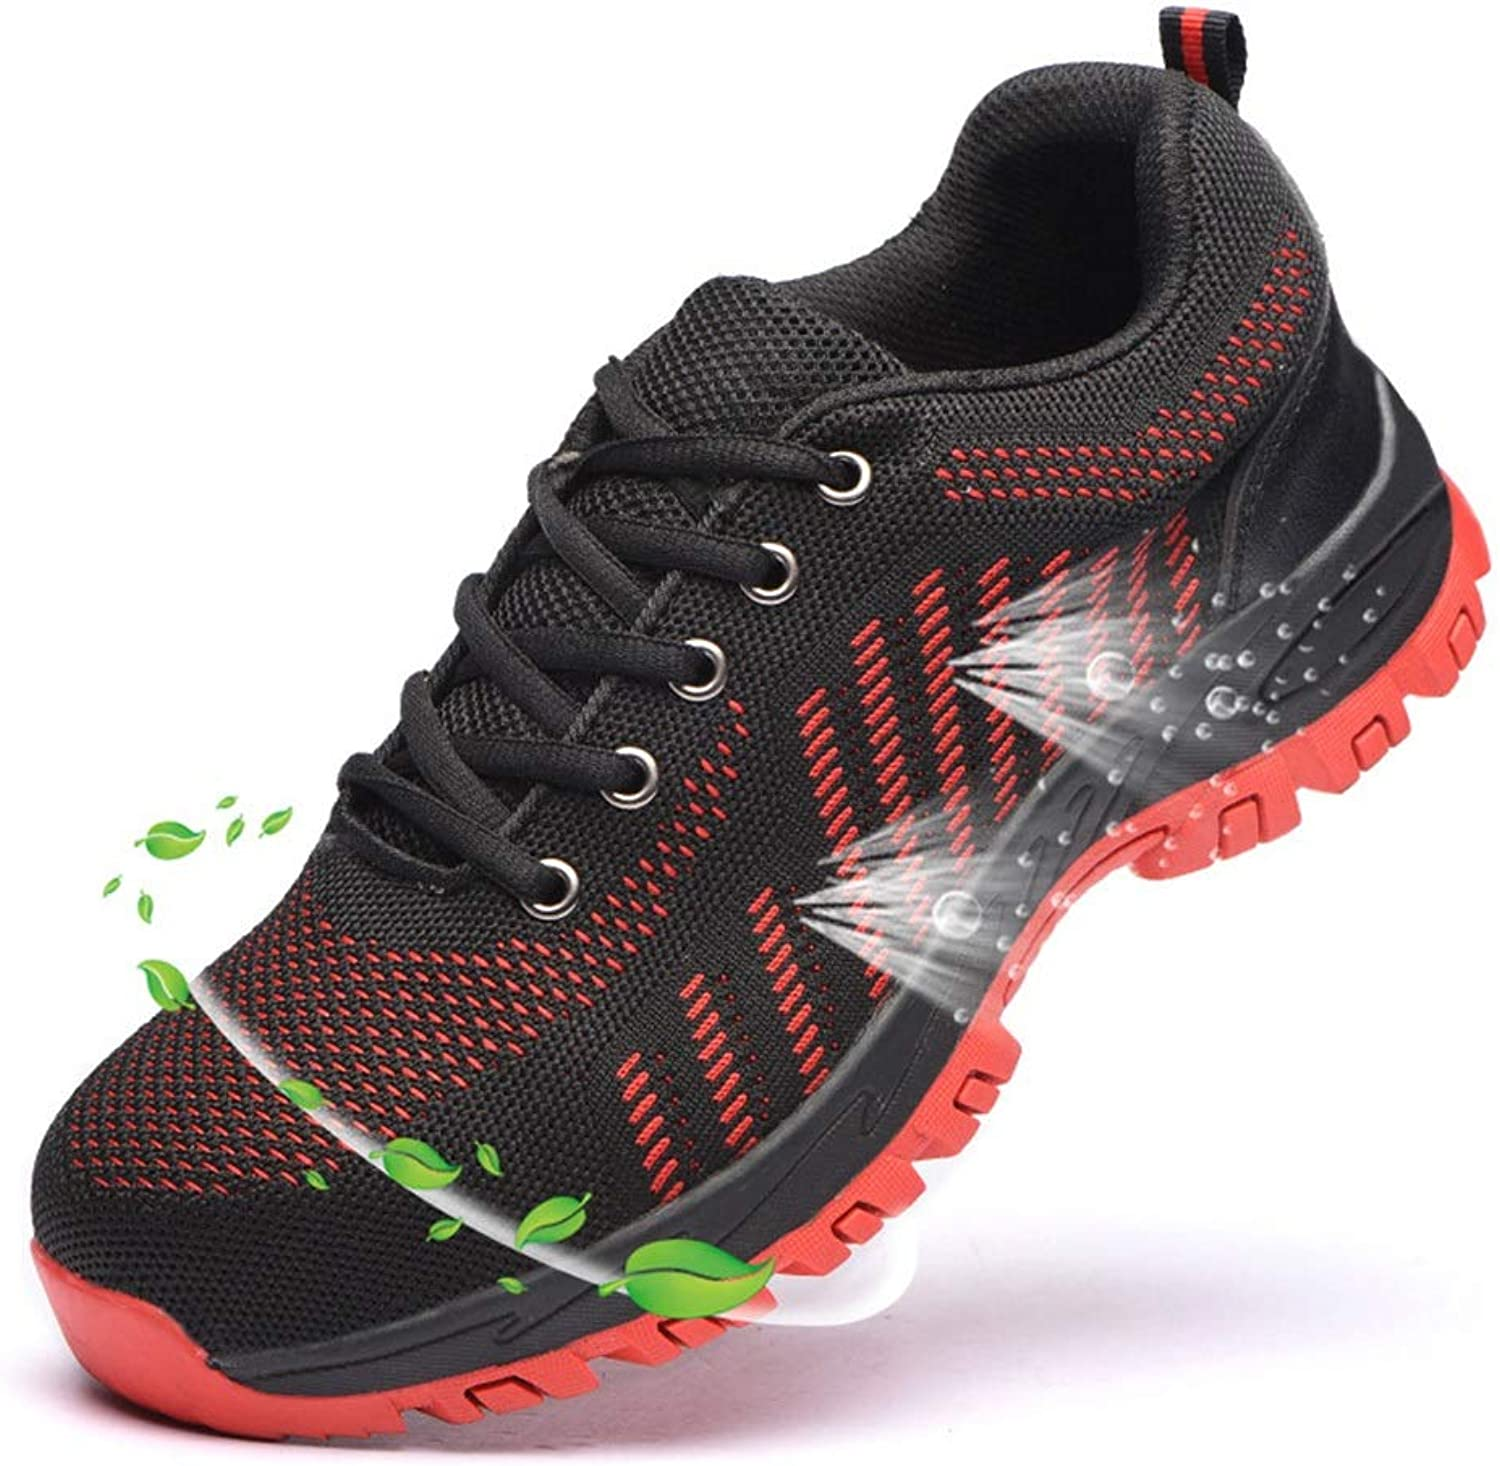 Easy Go Shopping Anti-smashing Anti-piercing Summer Breathable Safety shoes Safety shoes Predective shoes Cricket shoes (color   Red, Size   46)